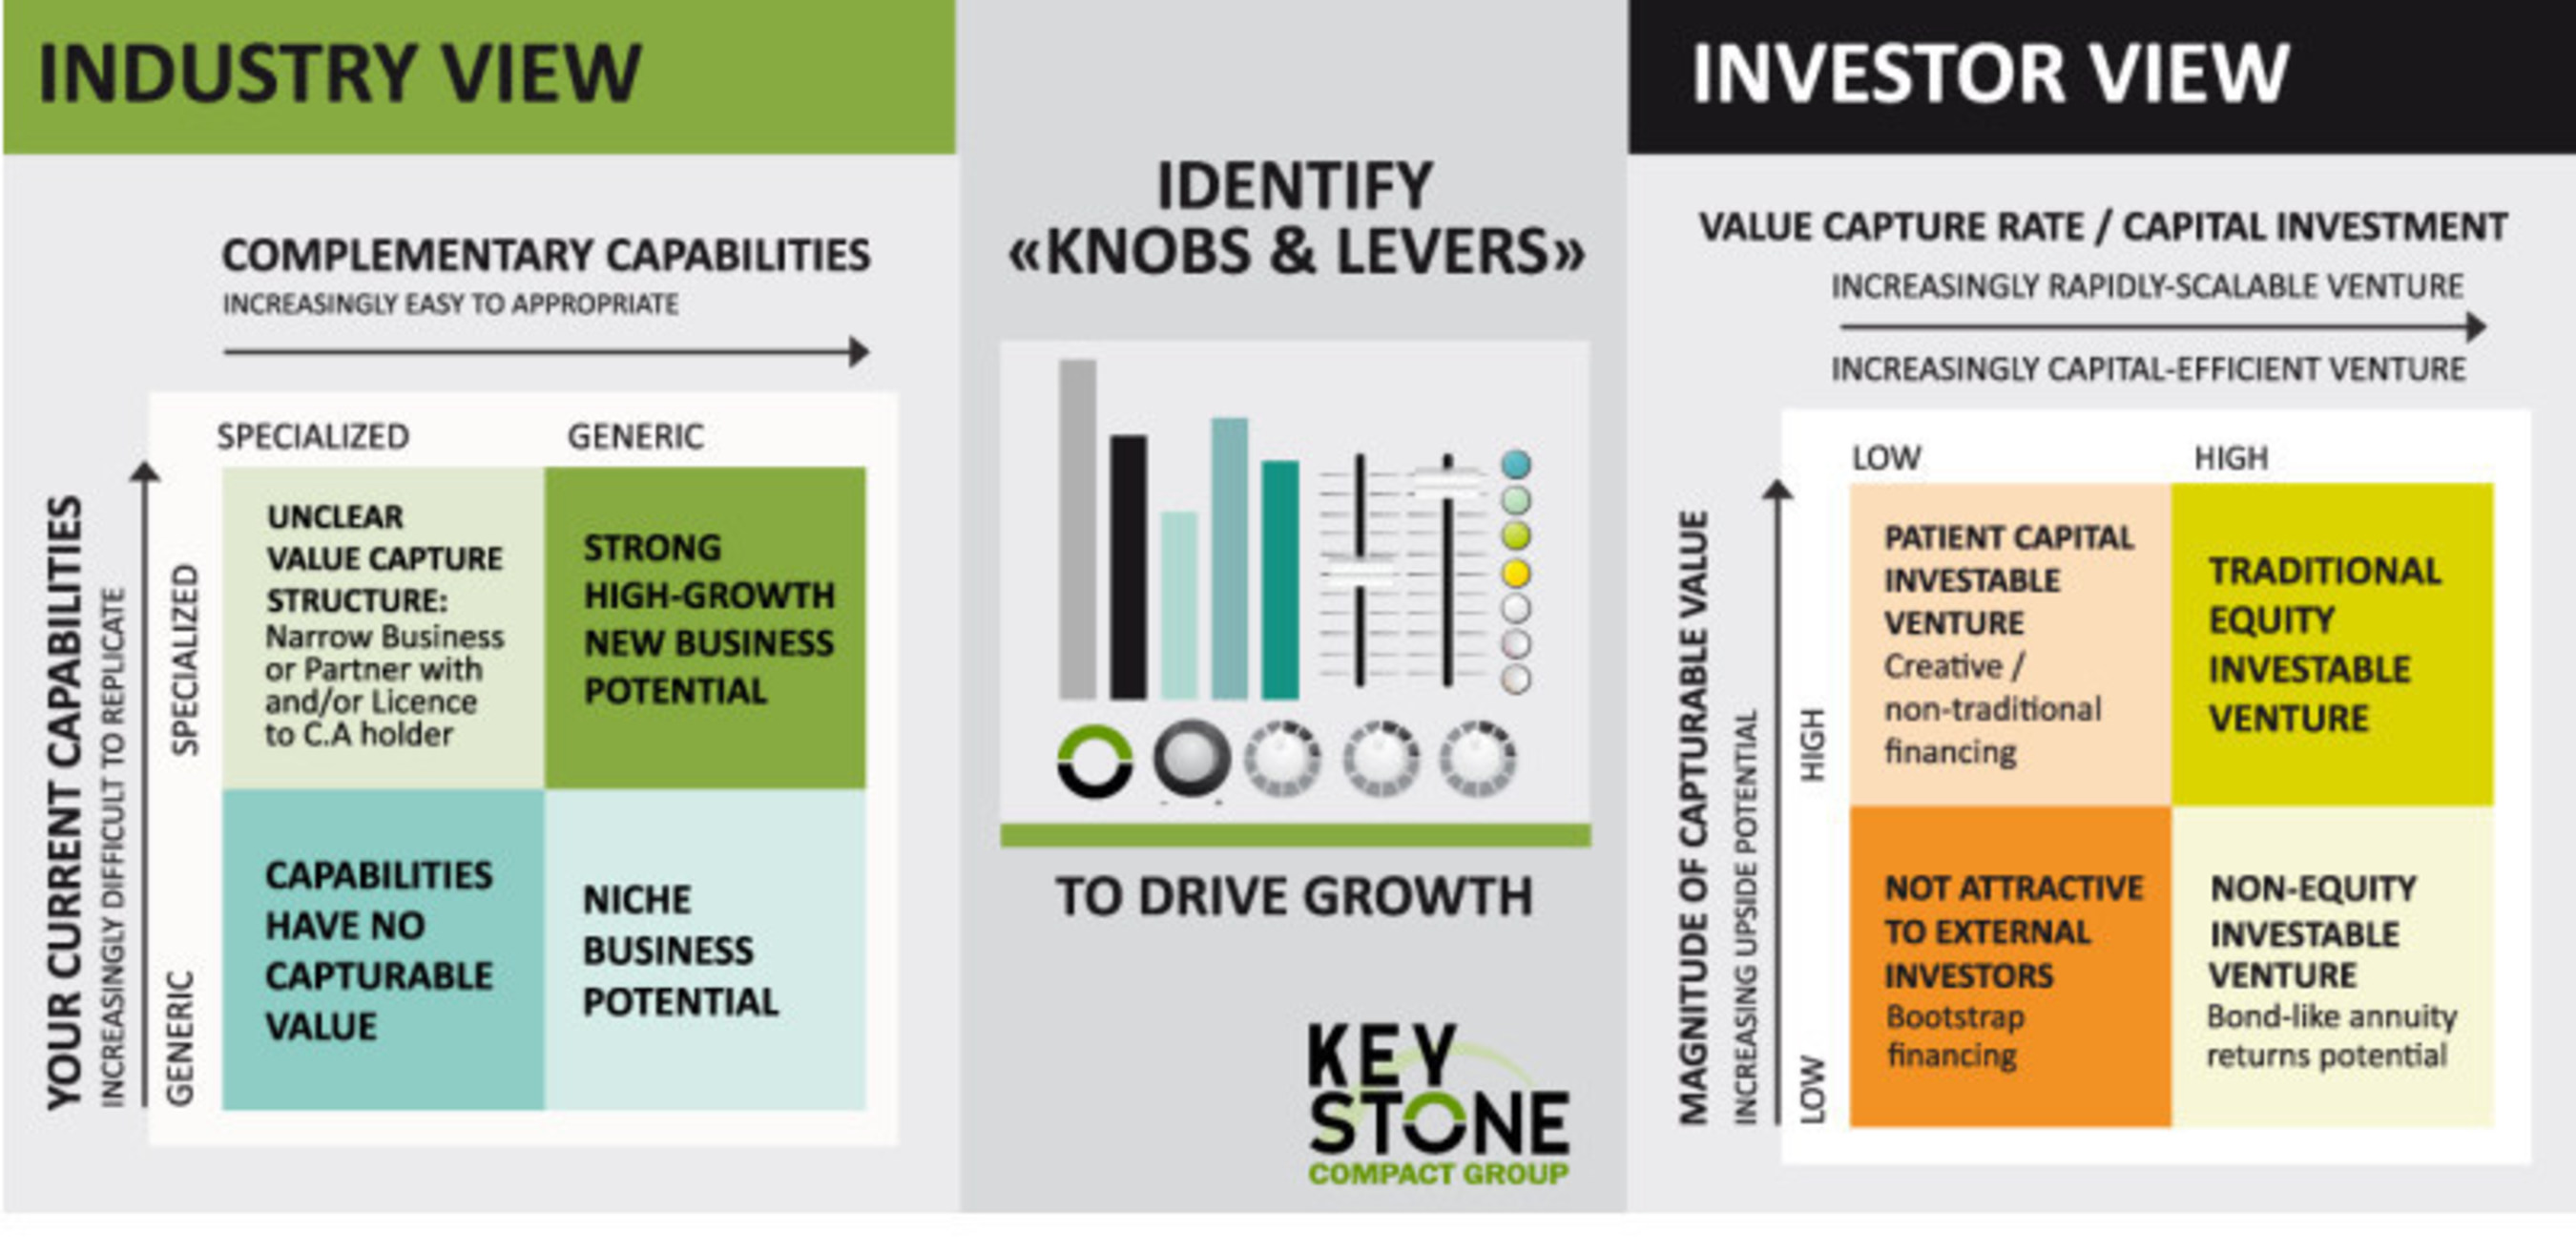 KeyStone Compact Group Investment Typology Assessment Tools Central to Design of Multi-Asset Funds